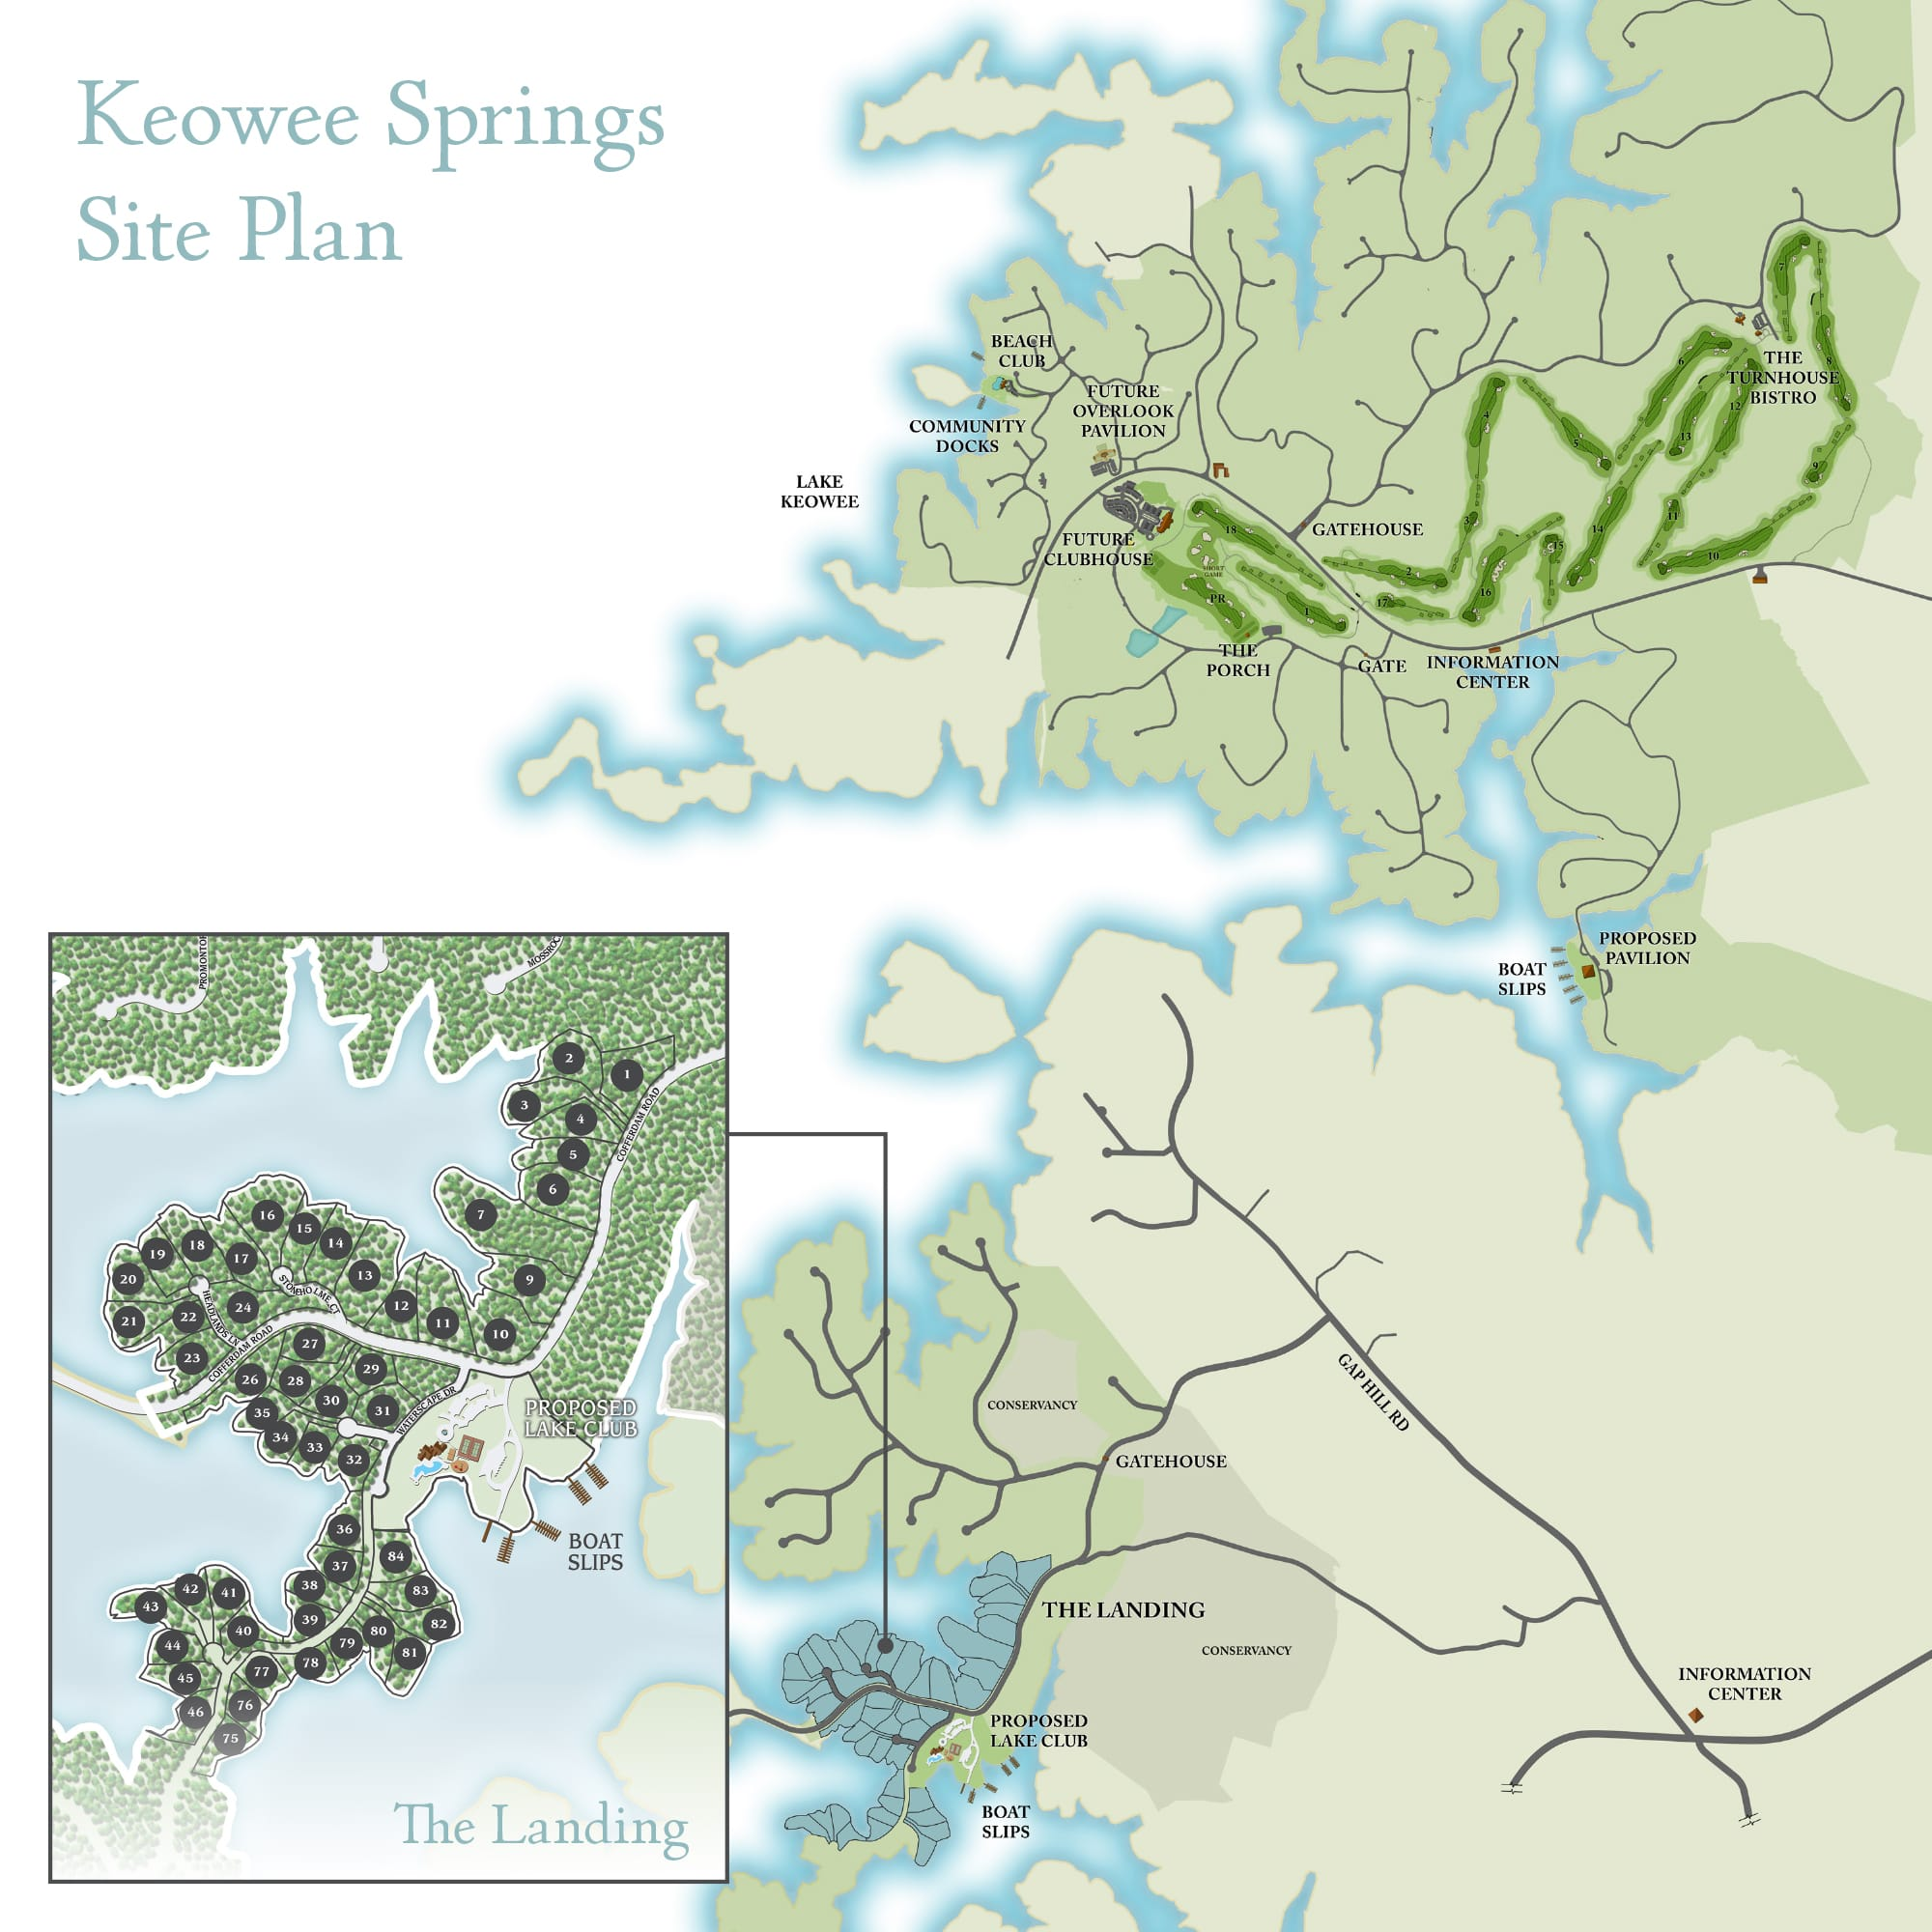 Keowee Springs Site Plan